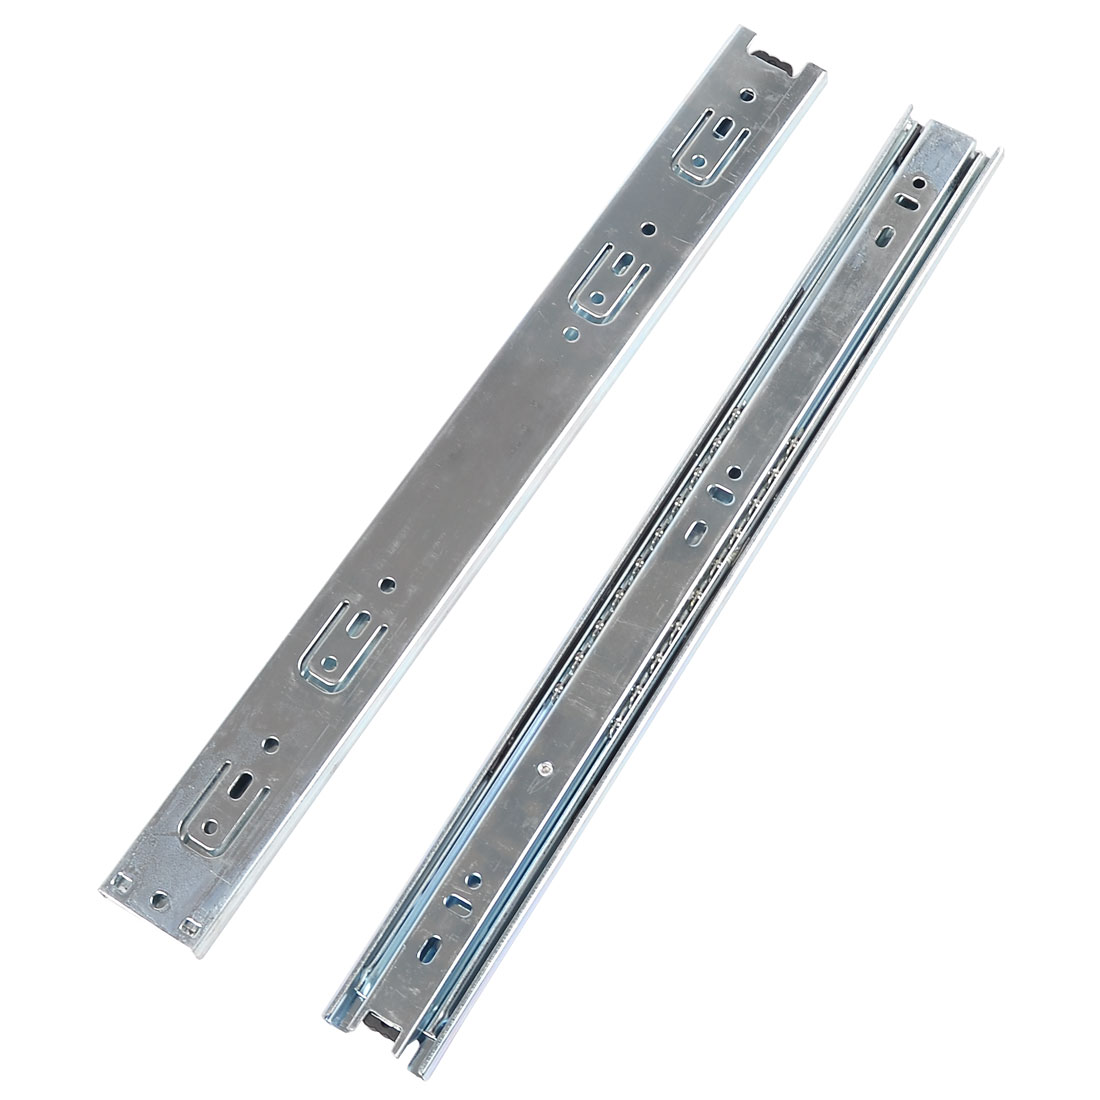 "2 Pcs Silver Tone Metal 3 Sections Side Mount Drawer Slide 15"" Long"